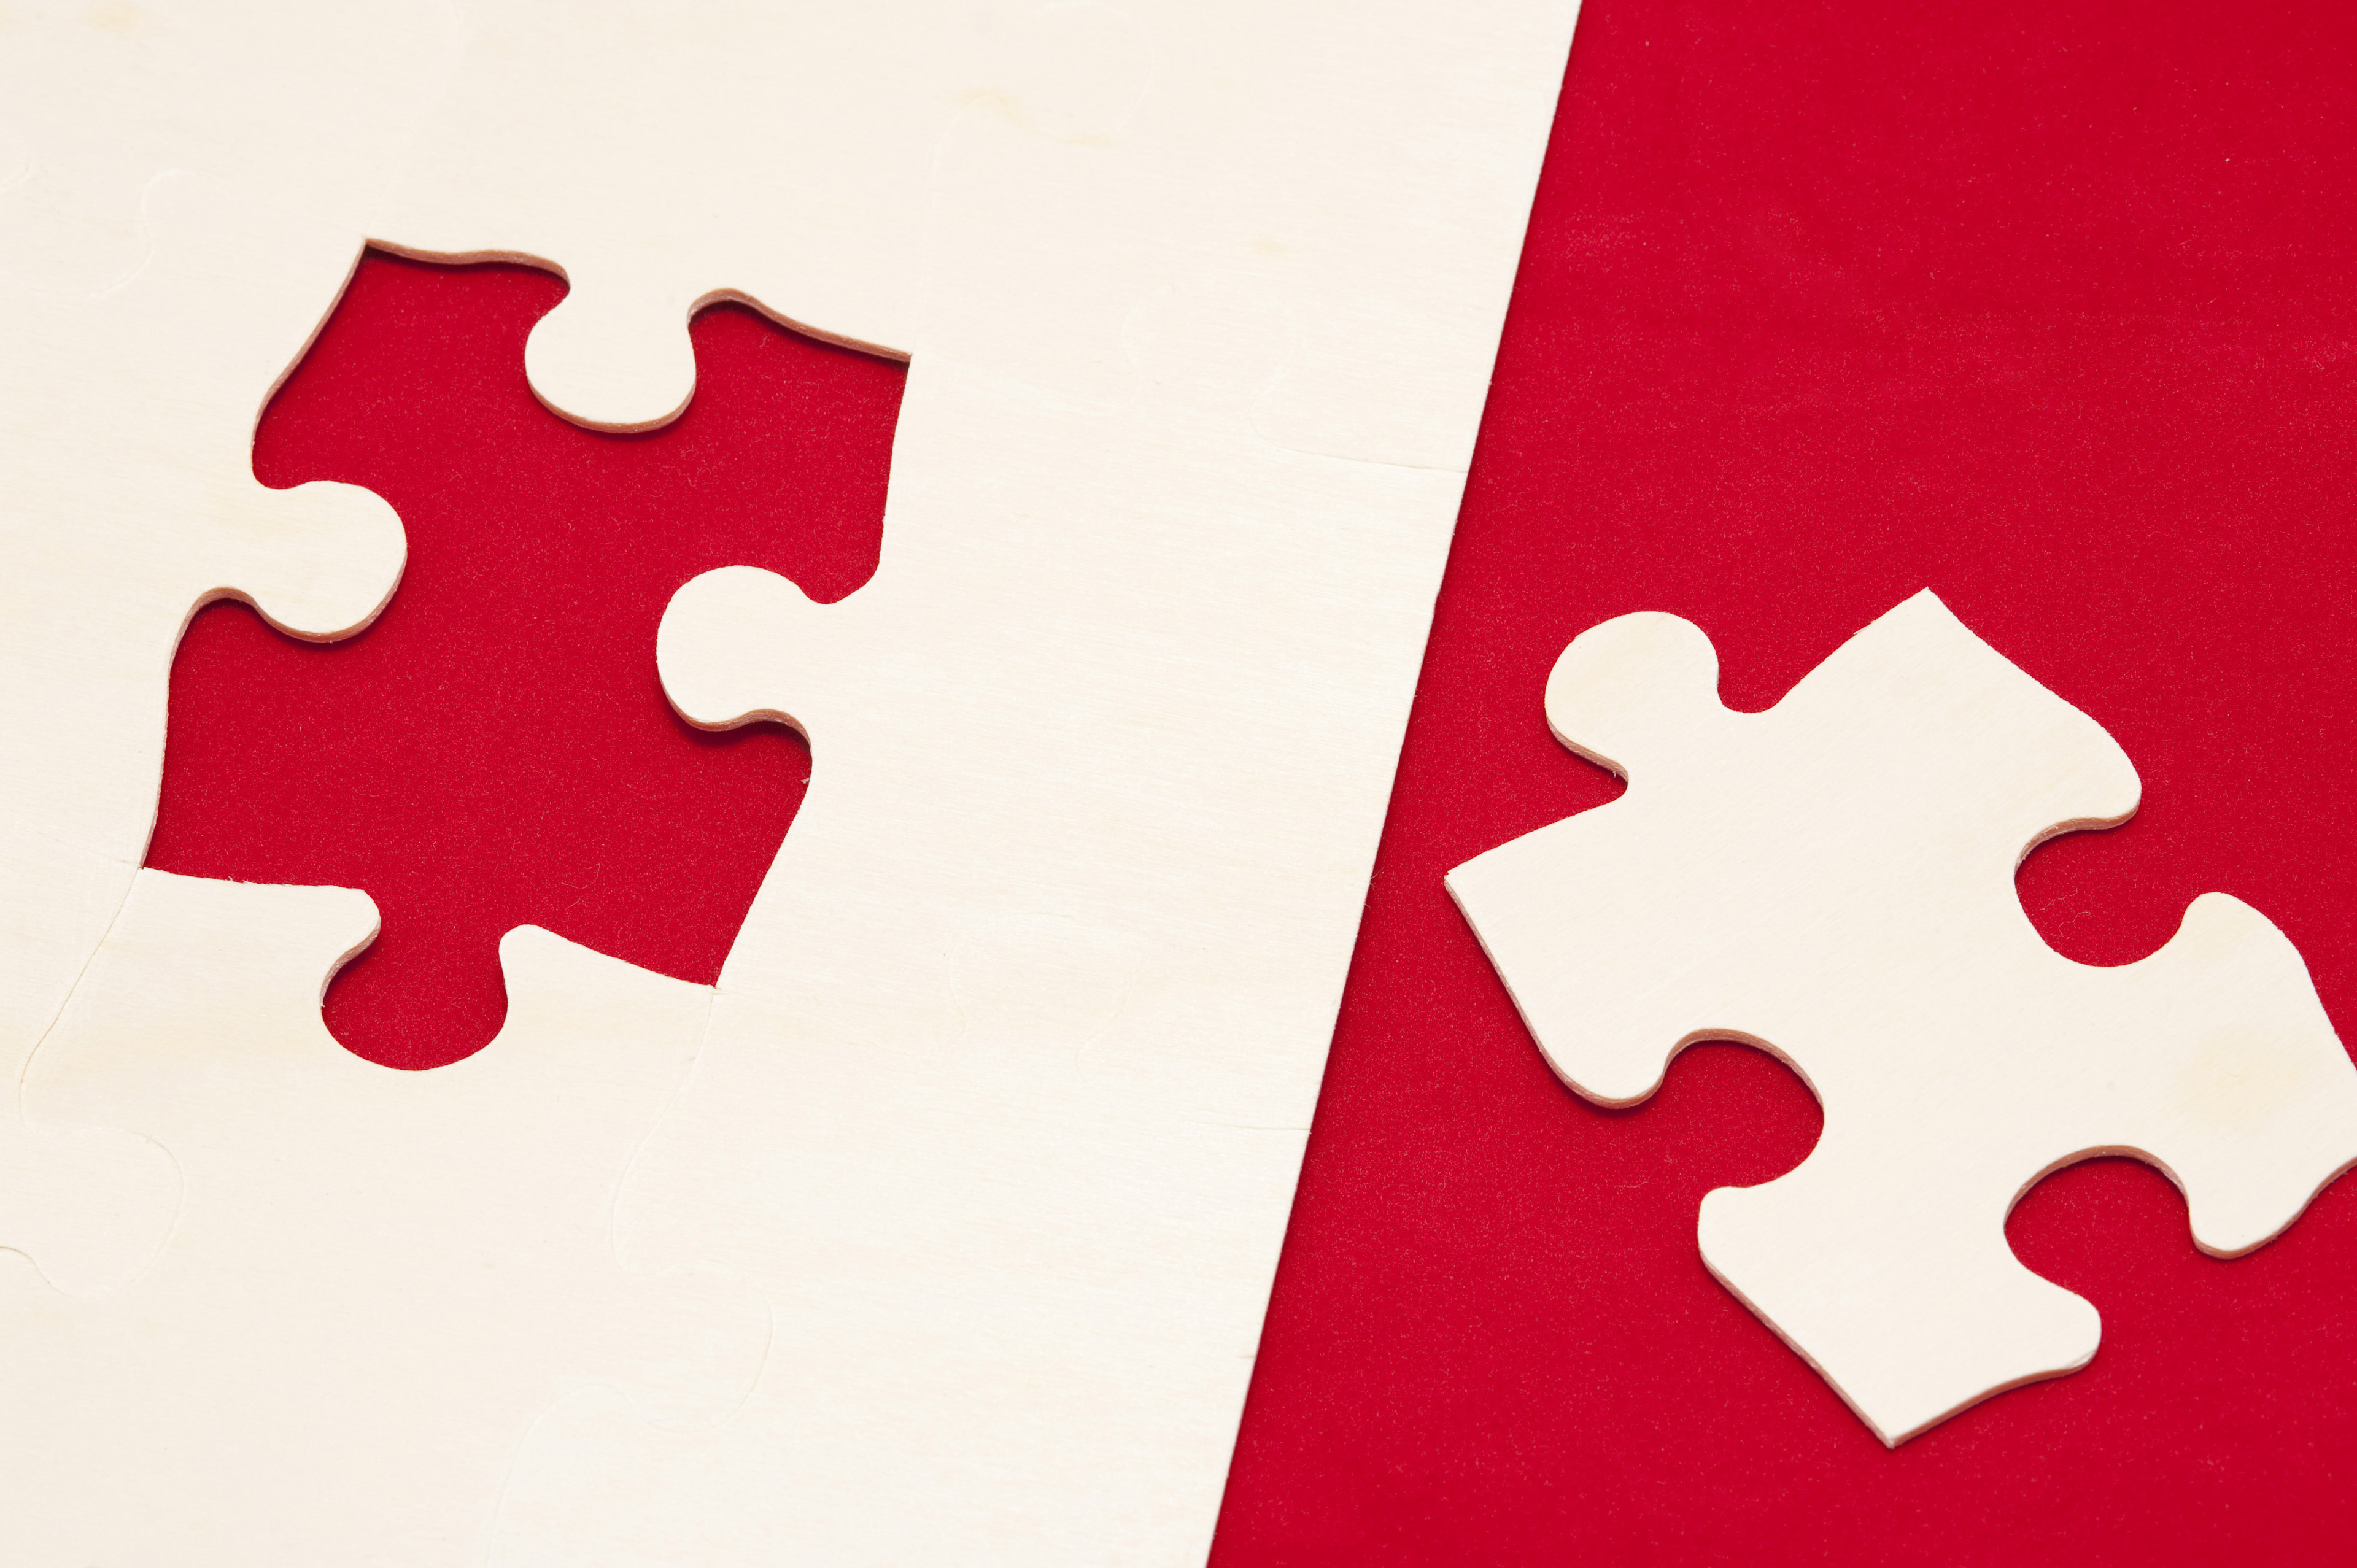 Close up Shot of Red and White Jigsaw Puzzle Game, Emphasizing Problem Solving Concept